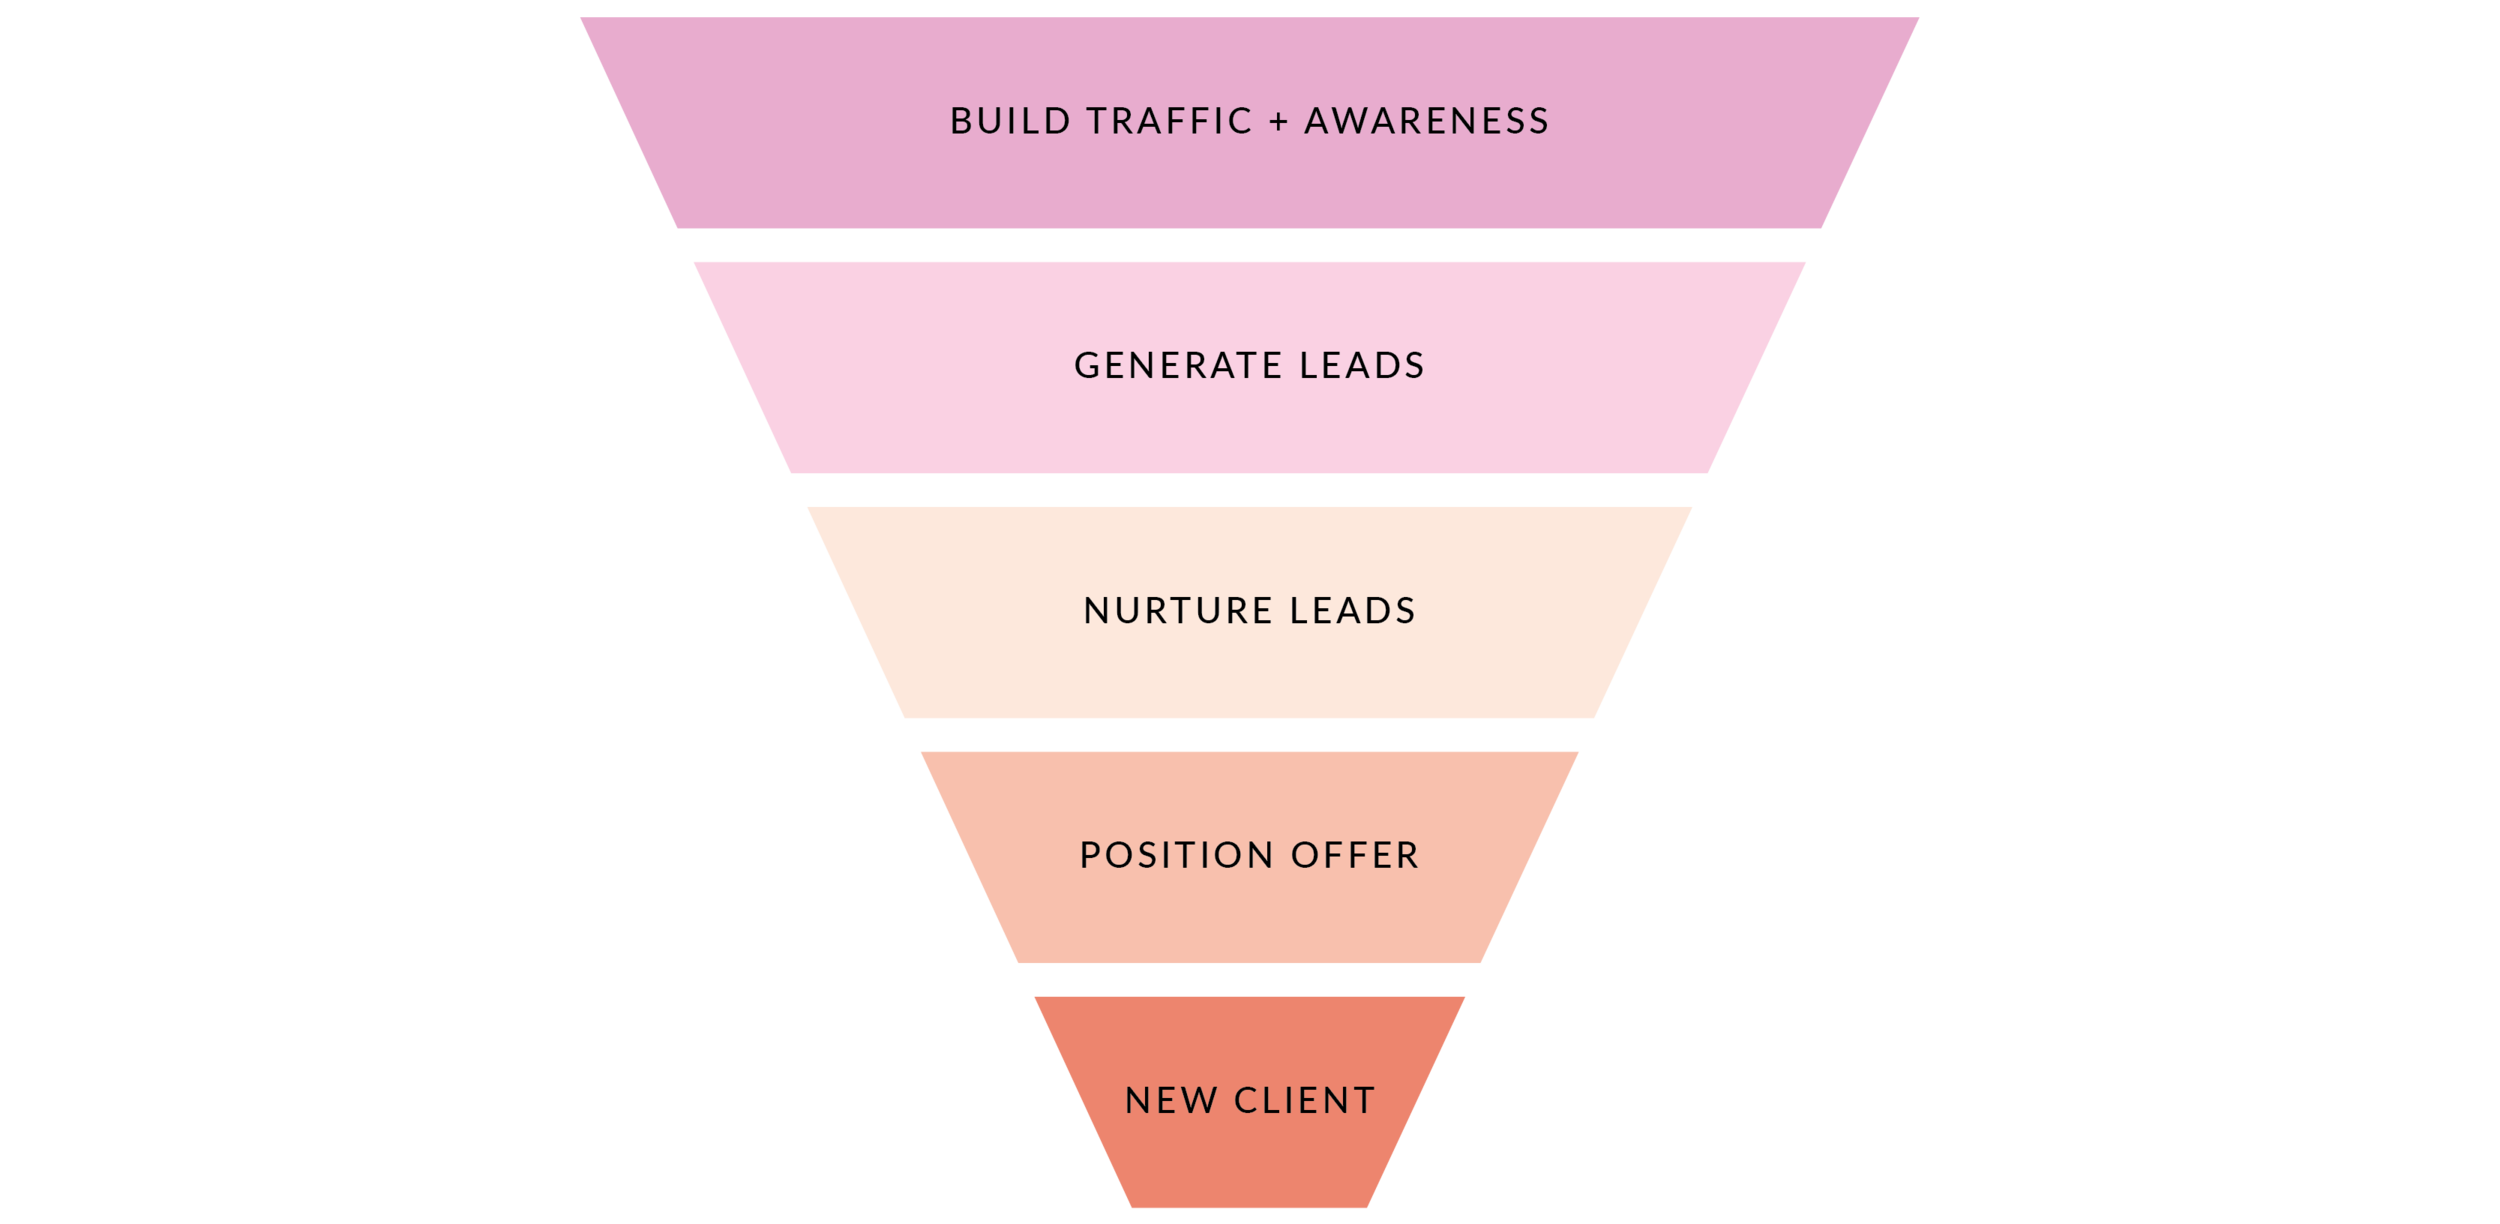 Breakdown of a sales funnel: first build traffic and awareness about your offer, generate qualified leads that will be a good match for your service, nurture those leads by providing information, education and social proof around your offer, hone in on the solution you offer as you position your services and land a new client at the end :)